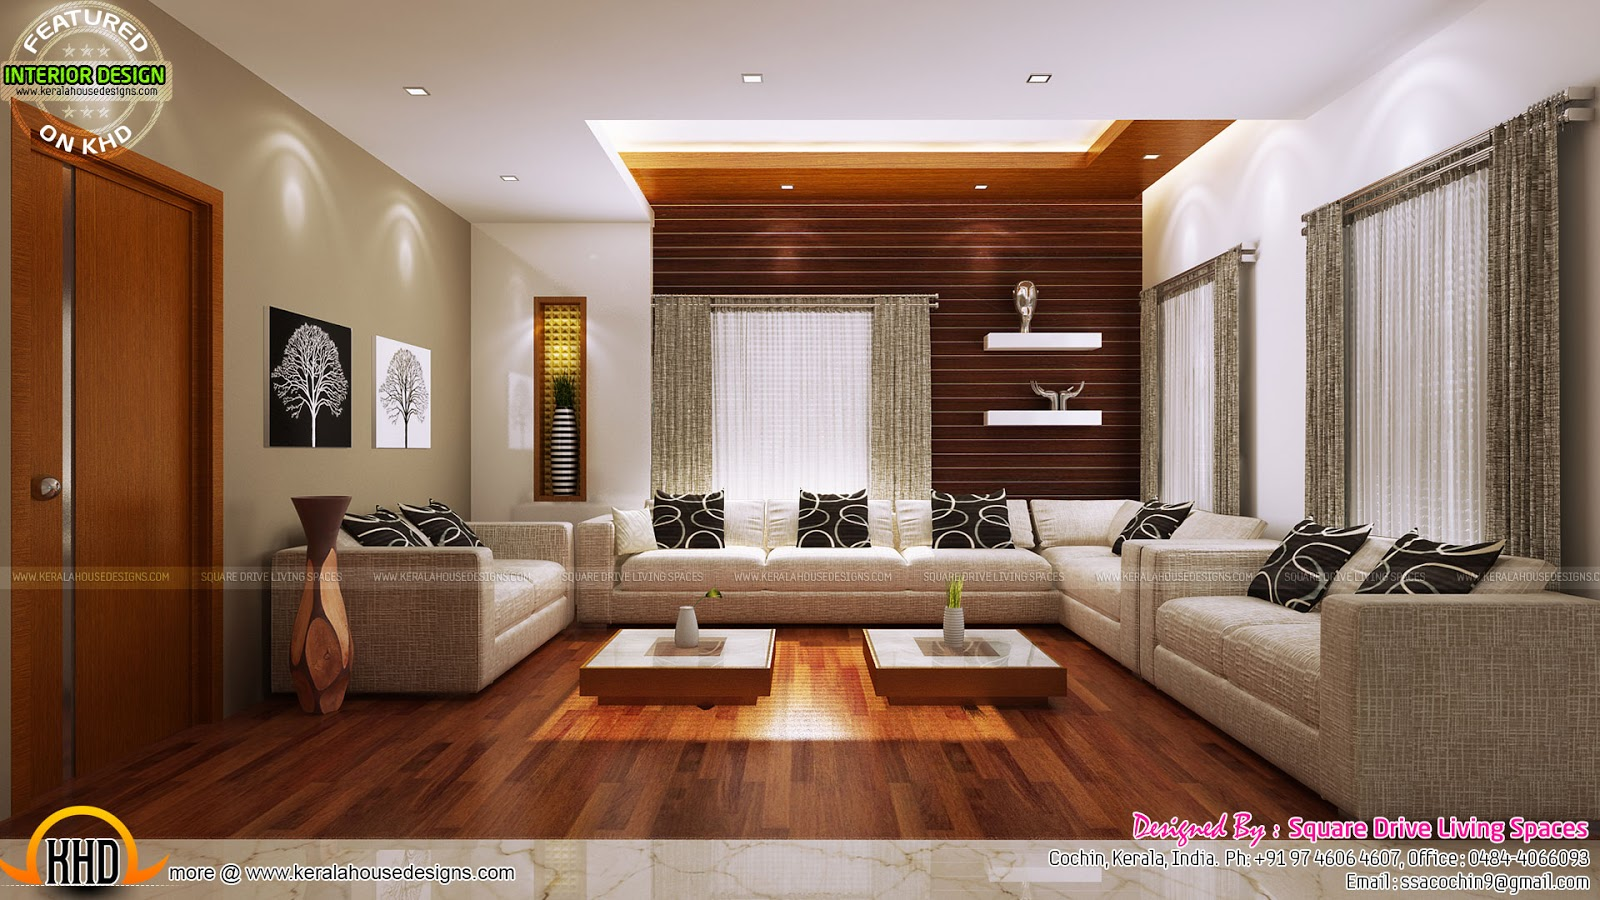 Excellent kerala interior design kerala home design and for Interior design ideas for small homes in kerala